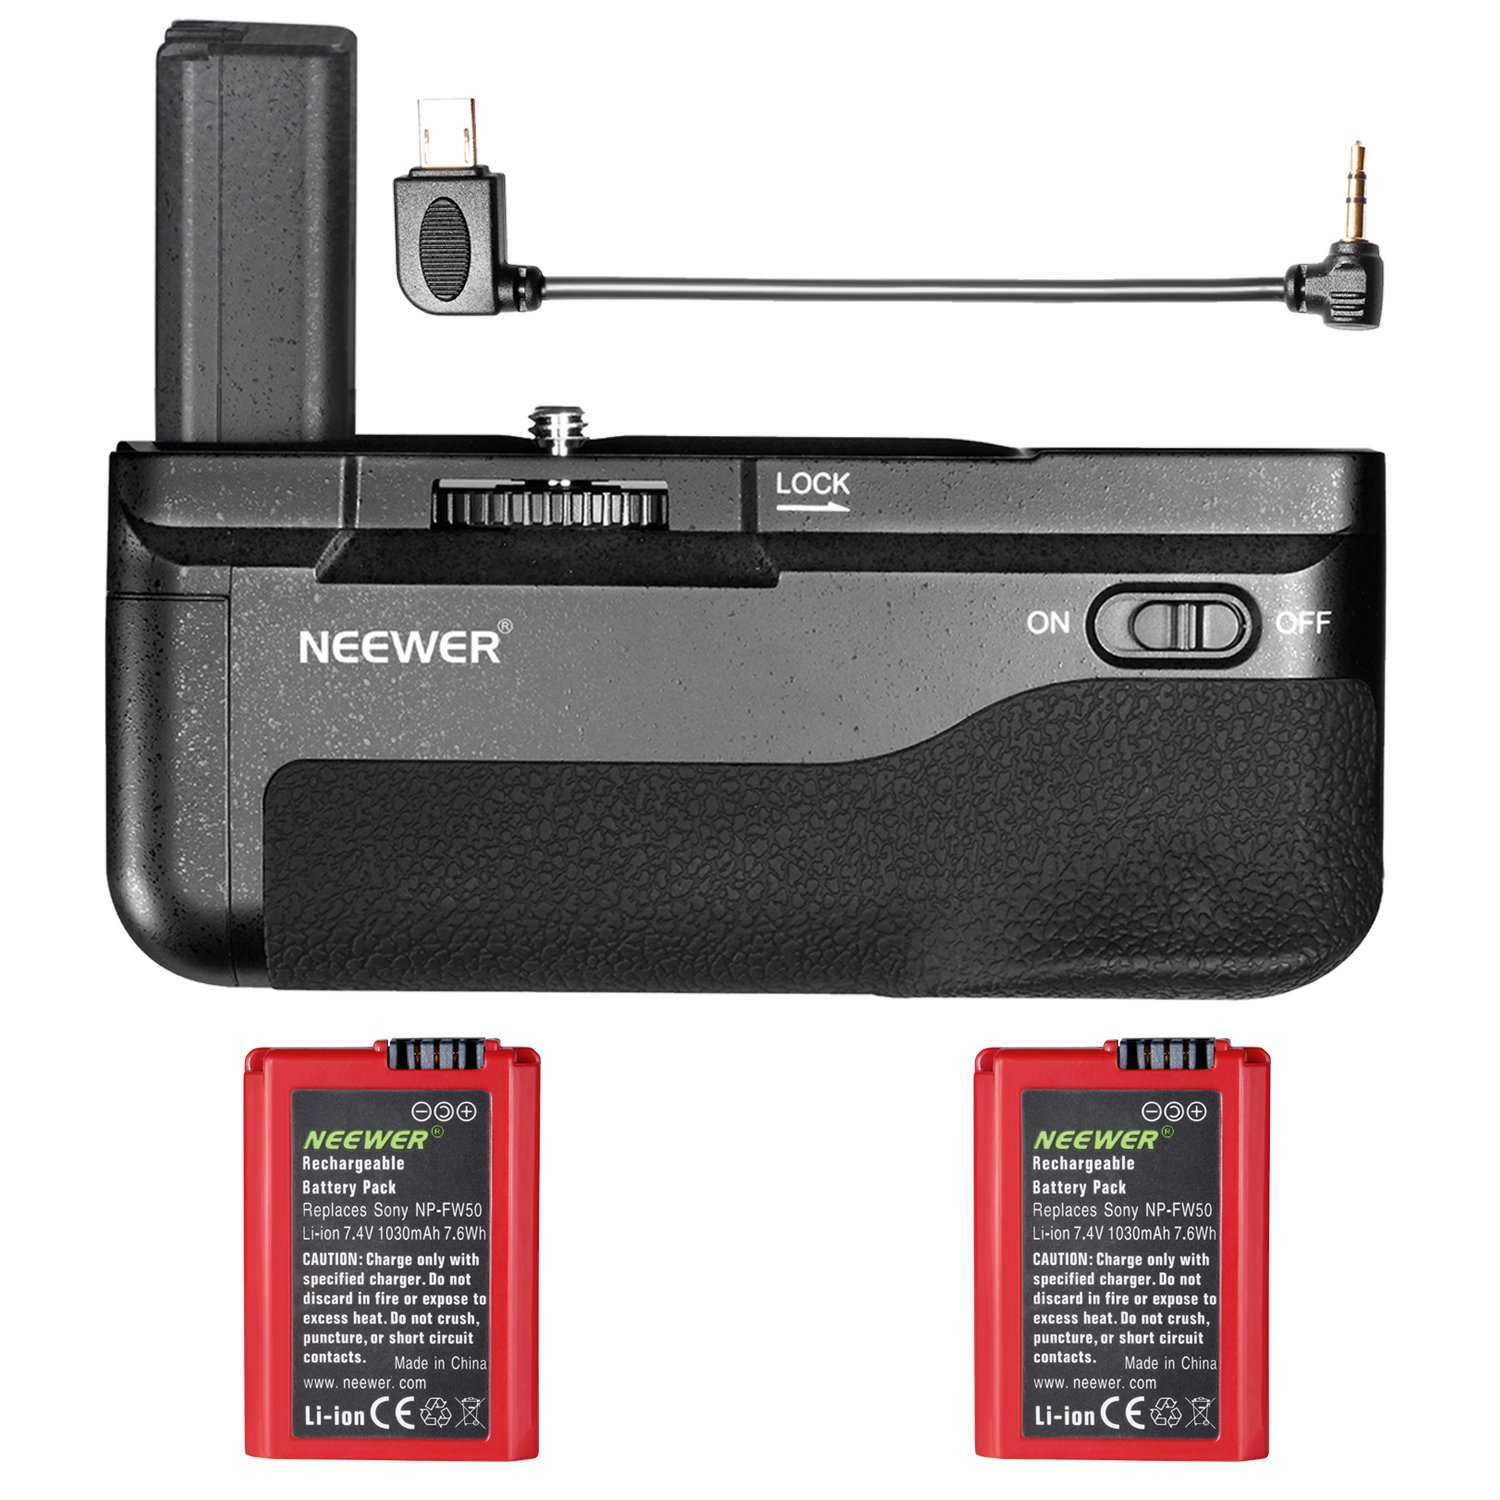 Neewer Vertical Battery Grip for Sony A6300 Mirrorless Digital Camera and 2-Pack 7.4V 1030mAh NP-FW50 Replacement Rechargeable Li-ion Battery (Red), Professional Grip with Shutter Release Button